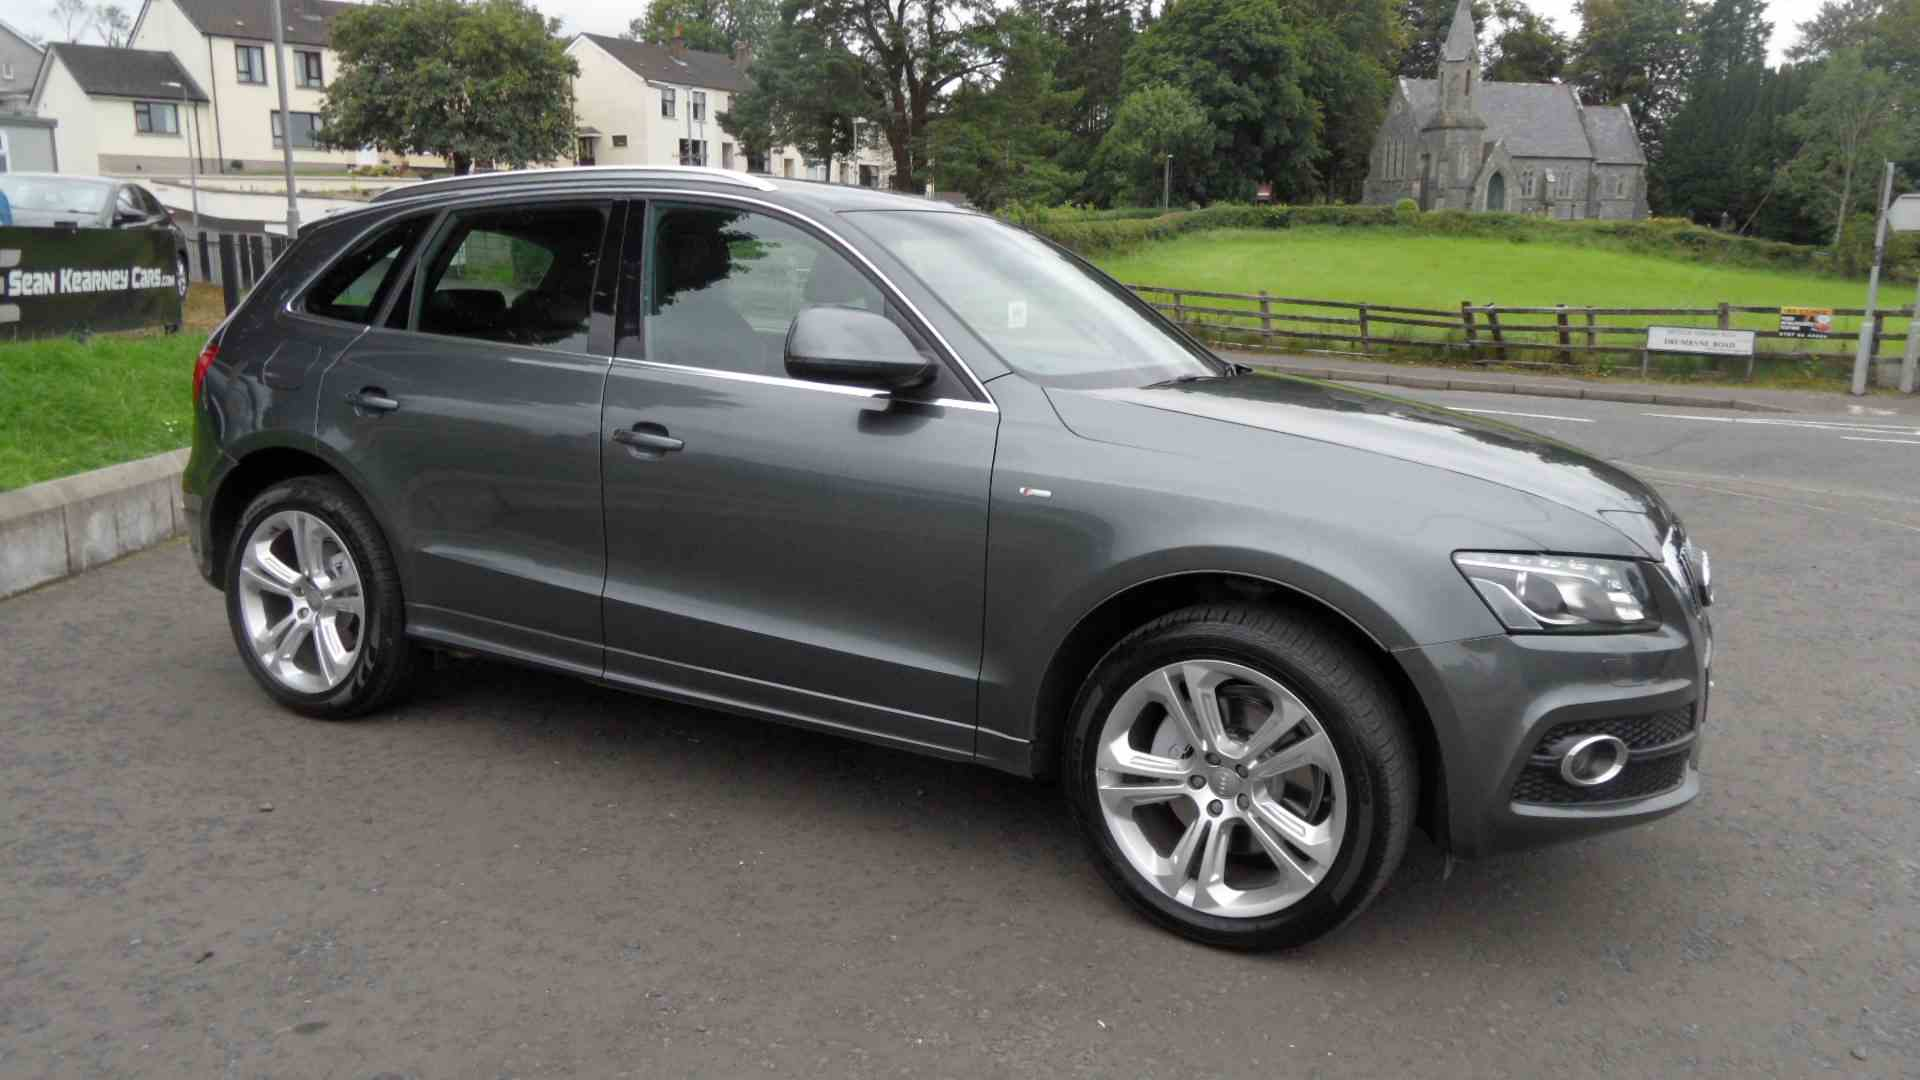 One of the best driving Q5's on the market, full Audi hi One of the best driving Q5's on the market, full Audi  story up to 100k, exceptionally clean, and the sought after V6 3.0 TDi 240BHP, call Sean on 07970936458 or 02879401371 for more information and to arrange a test drive